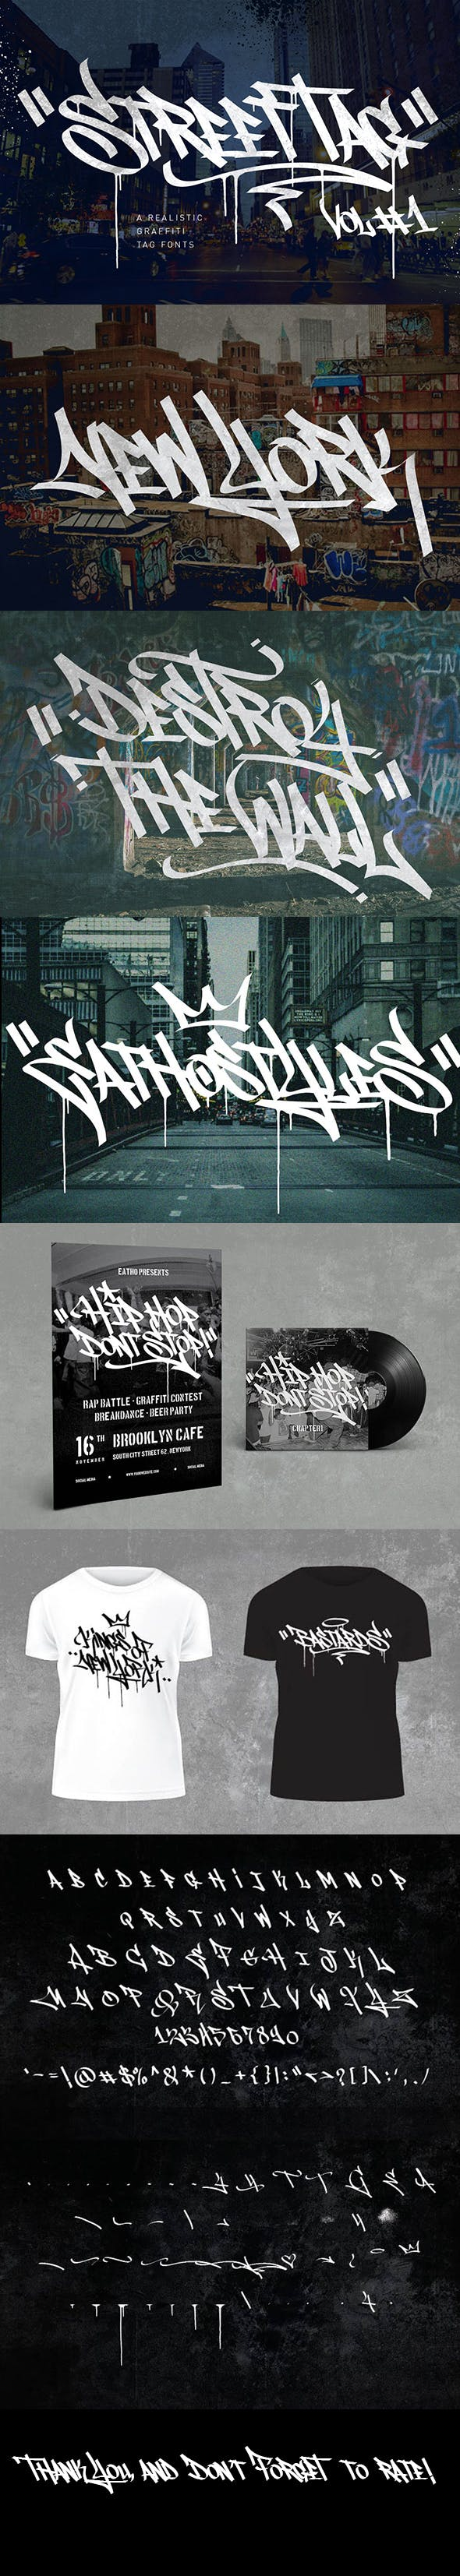 Street tag vol 1 graffiti fonts